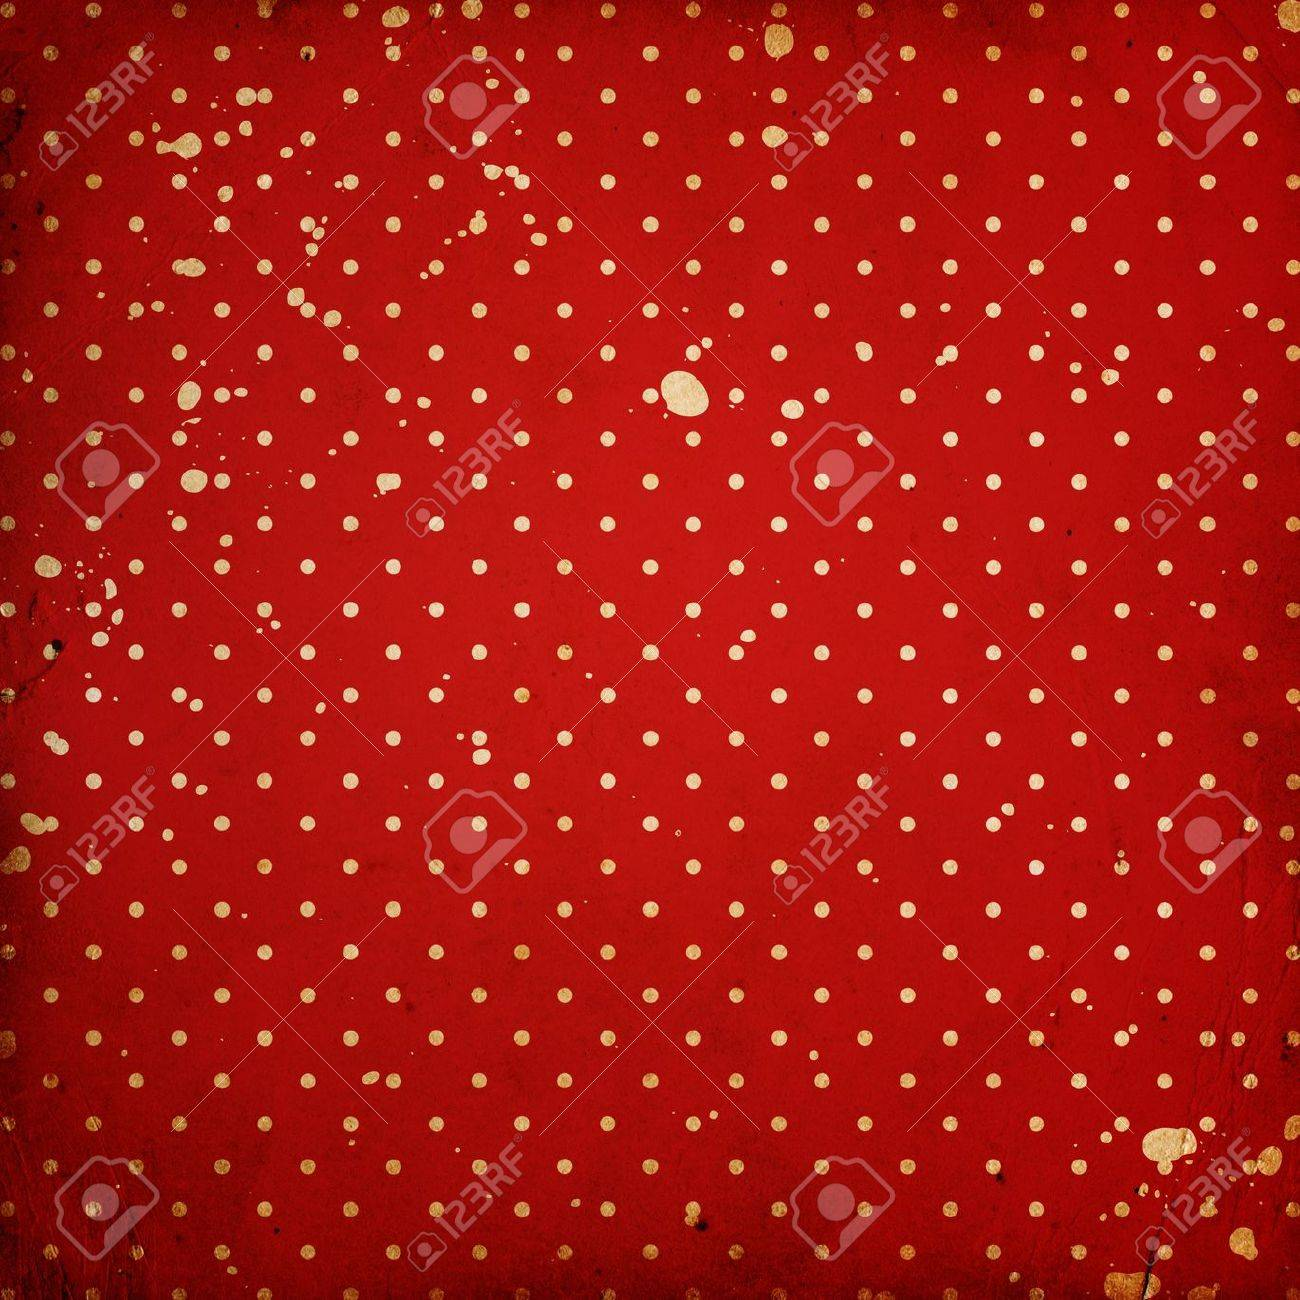 vintage dotted background with stains Stock Photo - 14669495